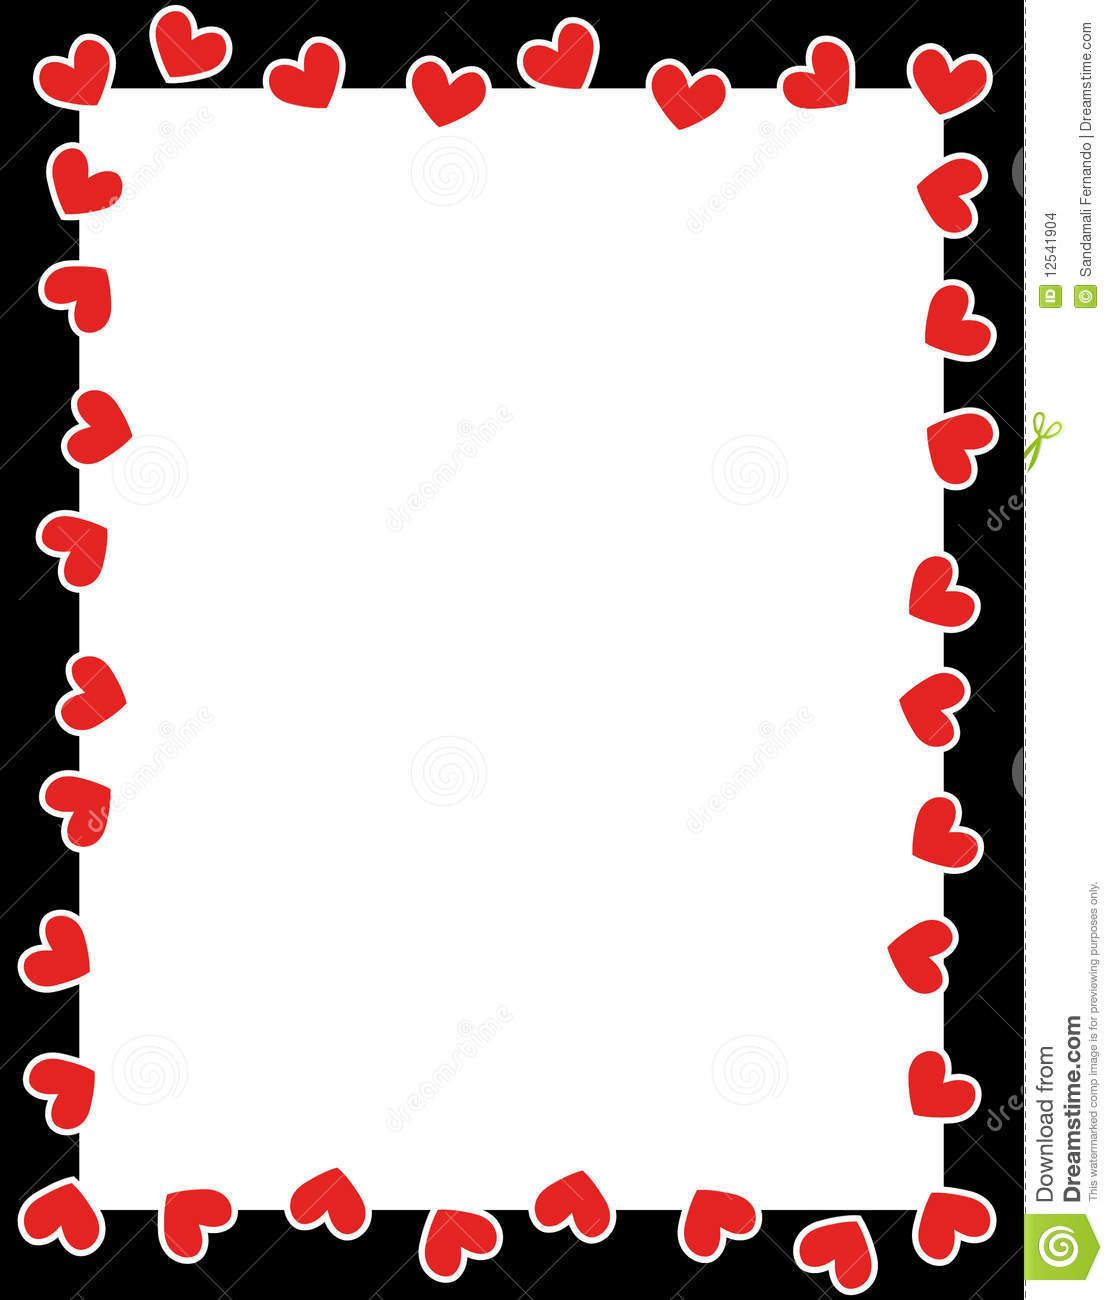 Valentines day clip art borders